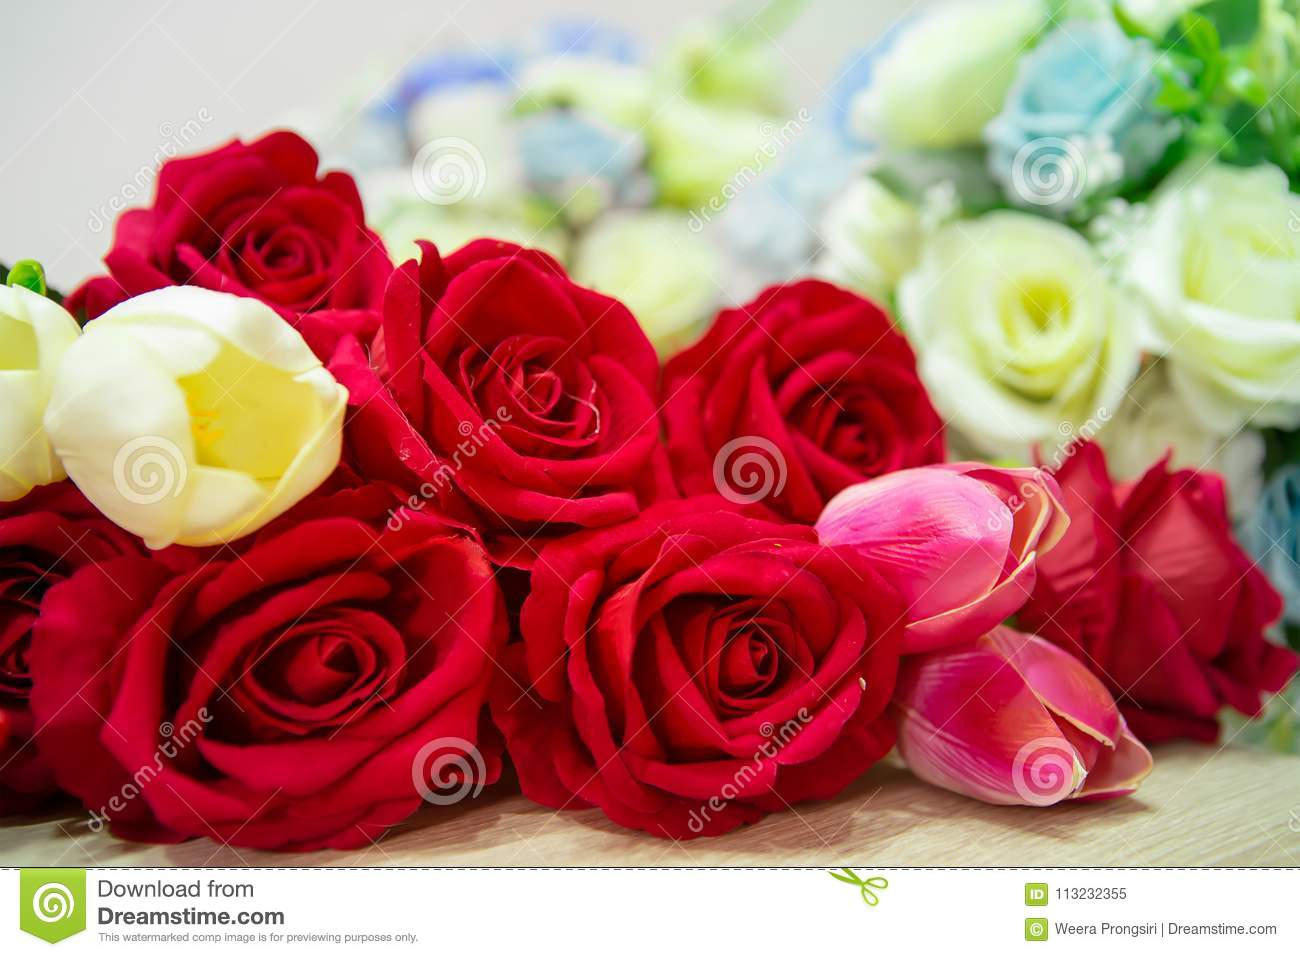 Rose Flower Bouquet Bunch Of Flowers Single Rose Single Fl Stock Image Image Of Gift Passion 113232355